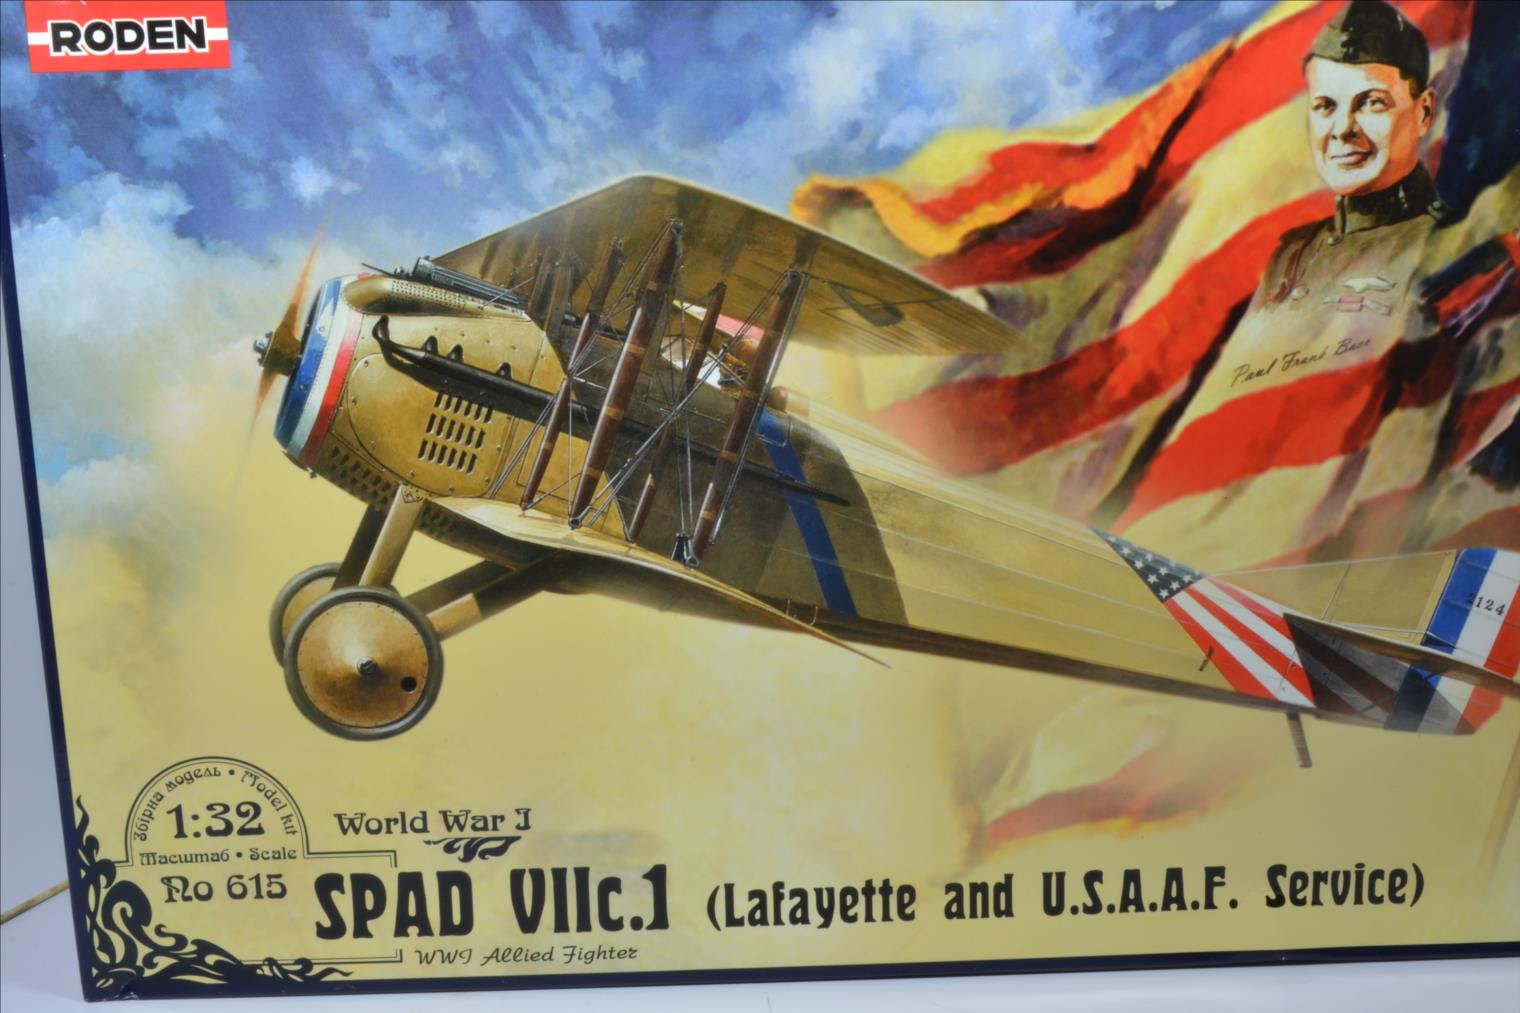 SPAD VIIc1 (RODEN 1/32) 20120109363522494217151807